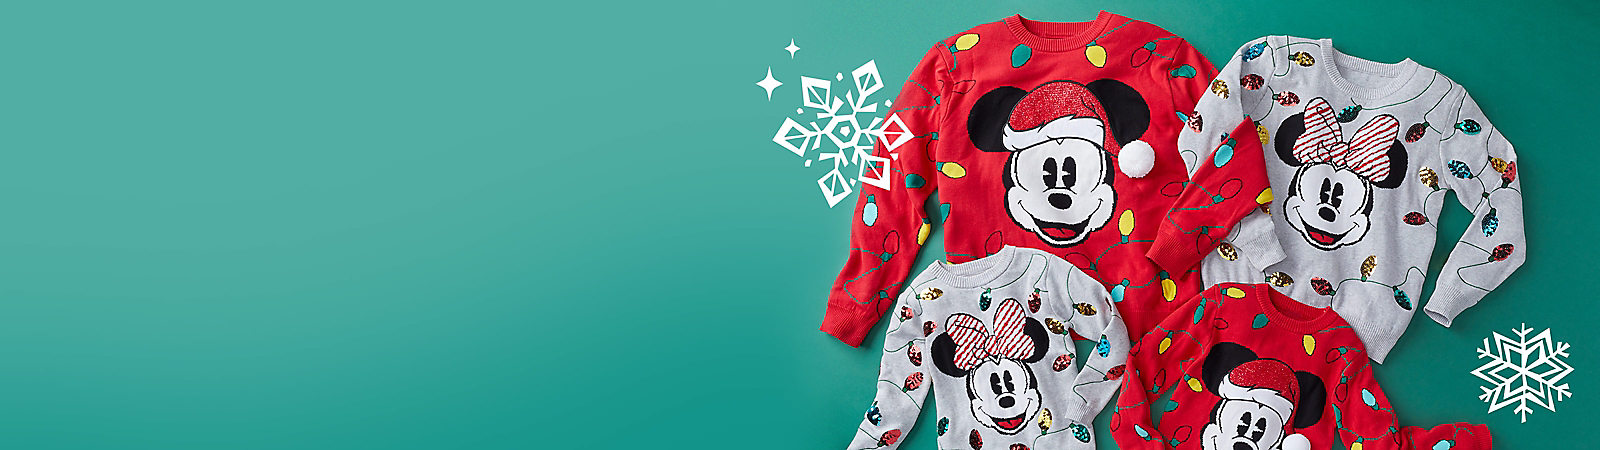 Background image of Holiday Clothing